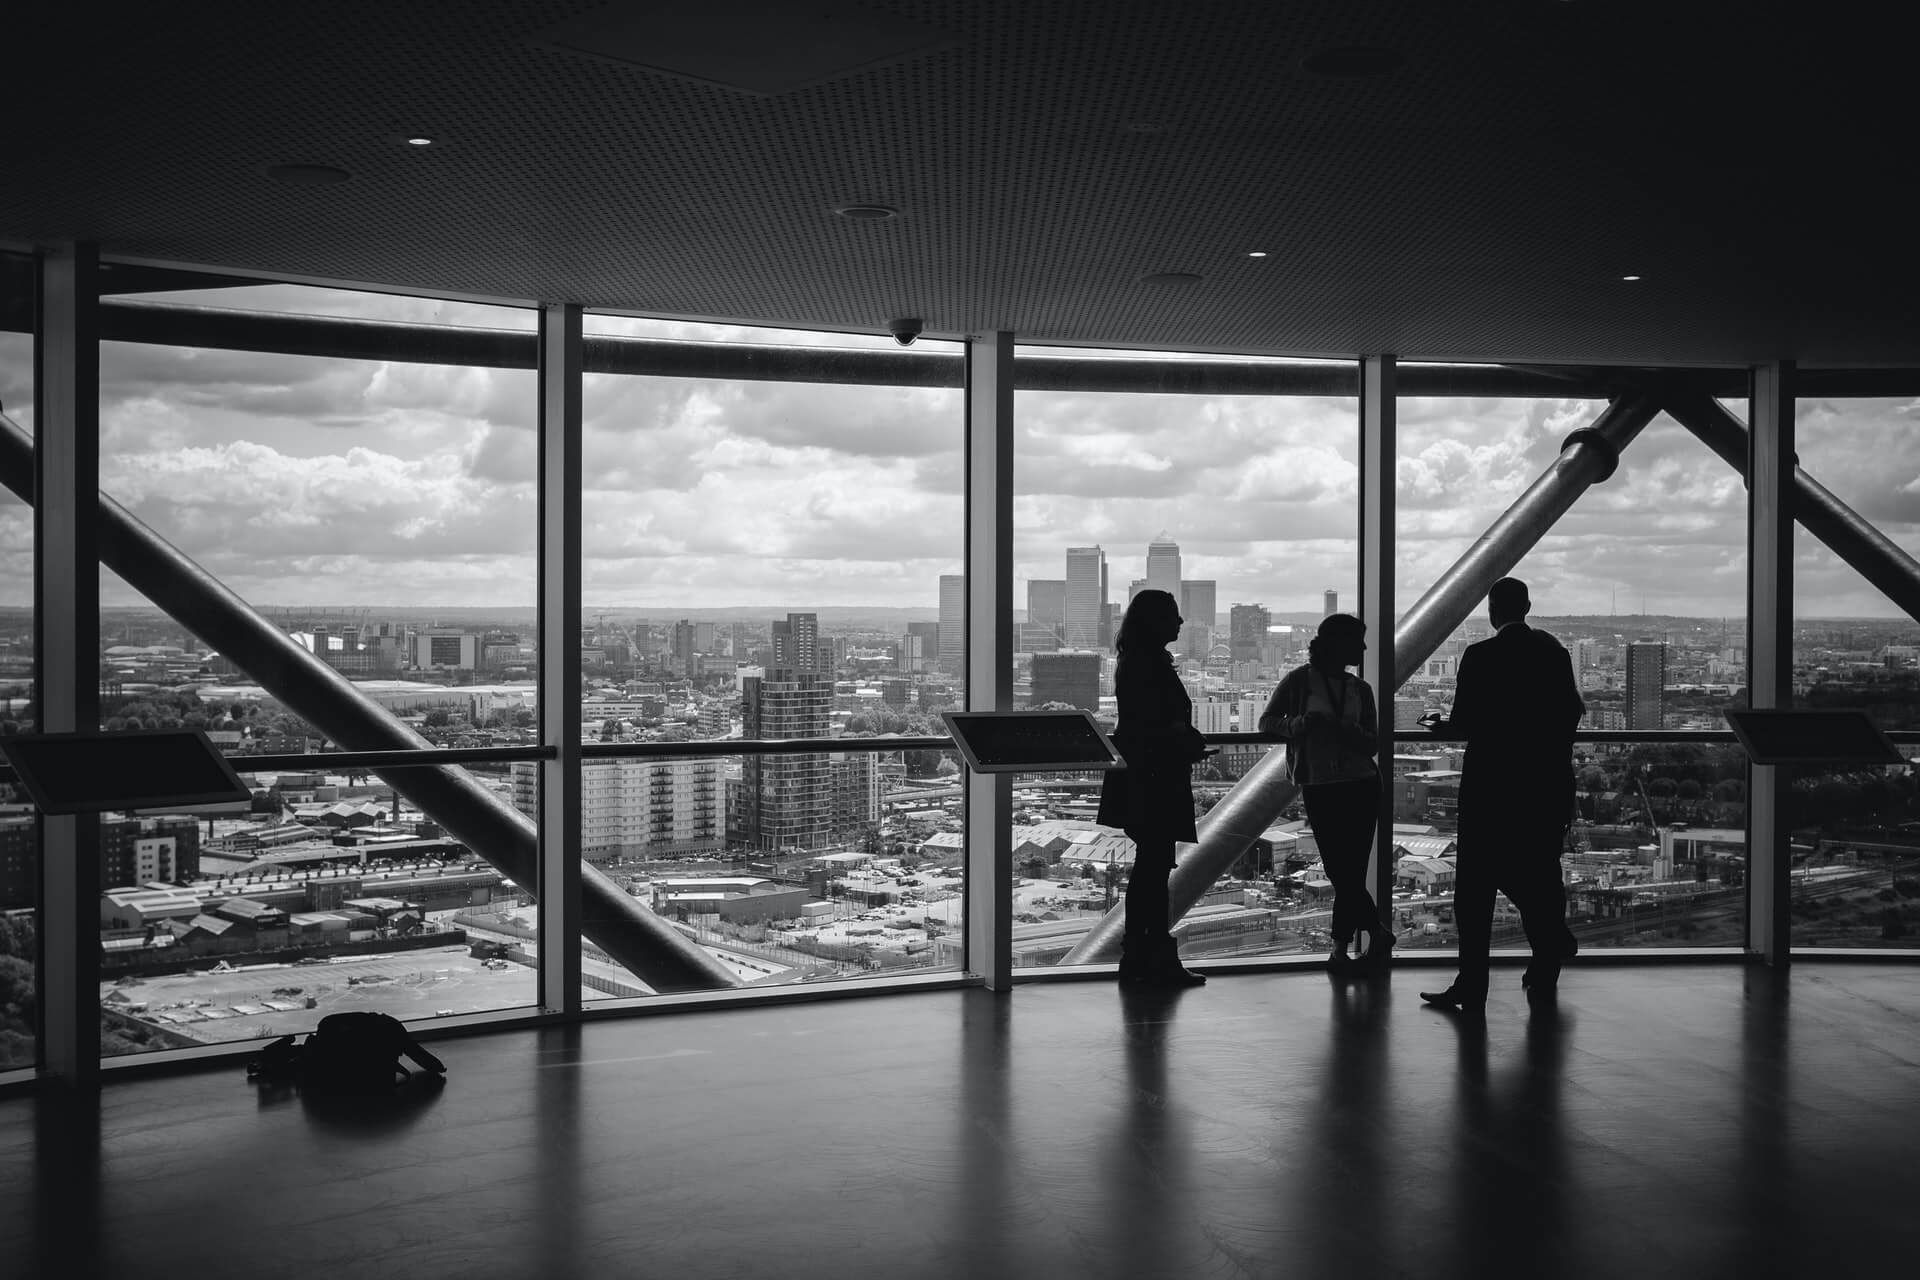 5 successful ways to develop a Business in 2021